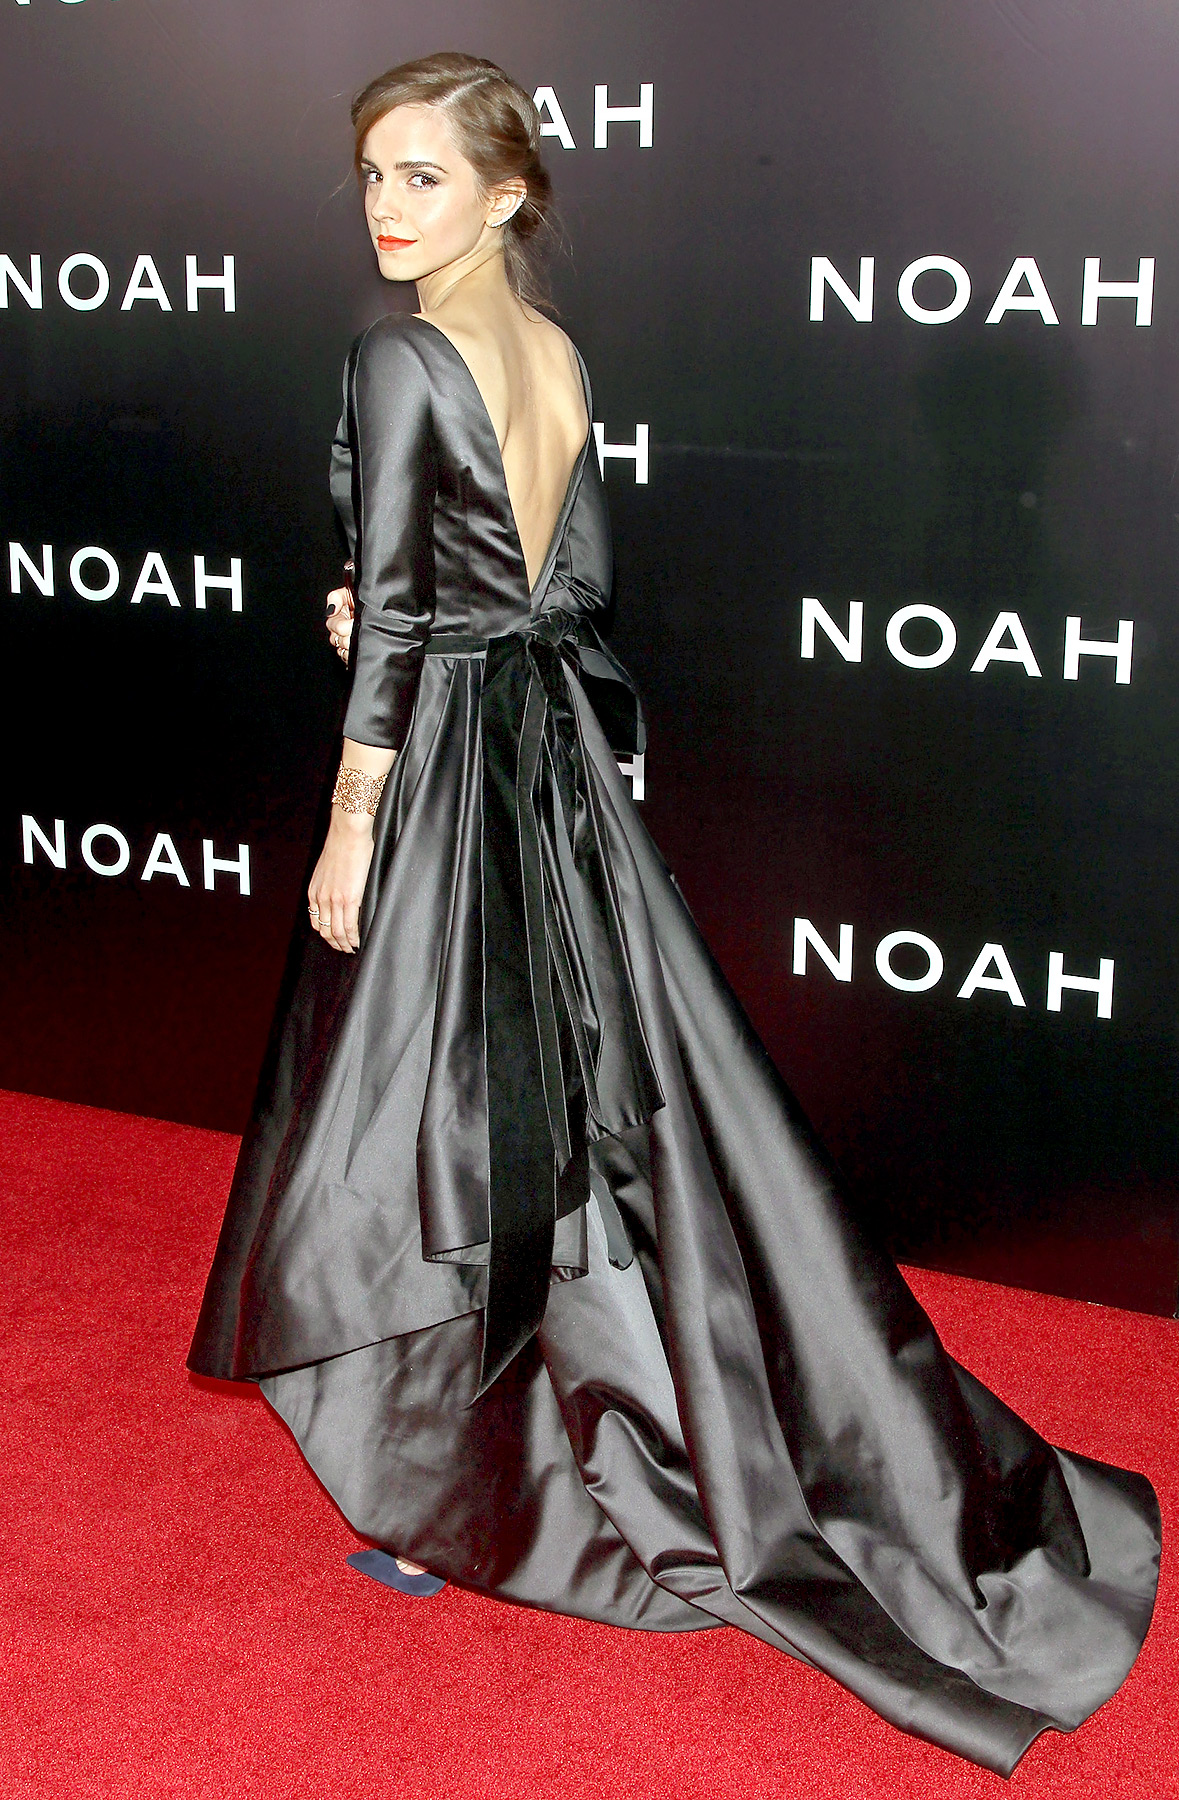 The Noah actress went dramatic for the New York premiere of her film, hitting the red carpet in an elegant Oscar de la Renta gown. The classy black satin number featured a boat neck and mid-length sleeves and showed off Watson's sexy side with a deep V-cut back, tied with a bow.